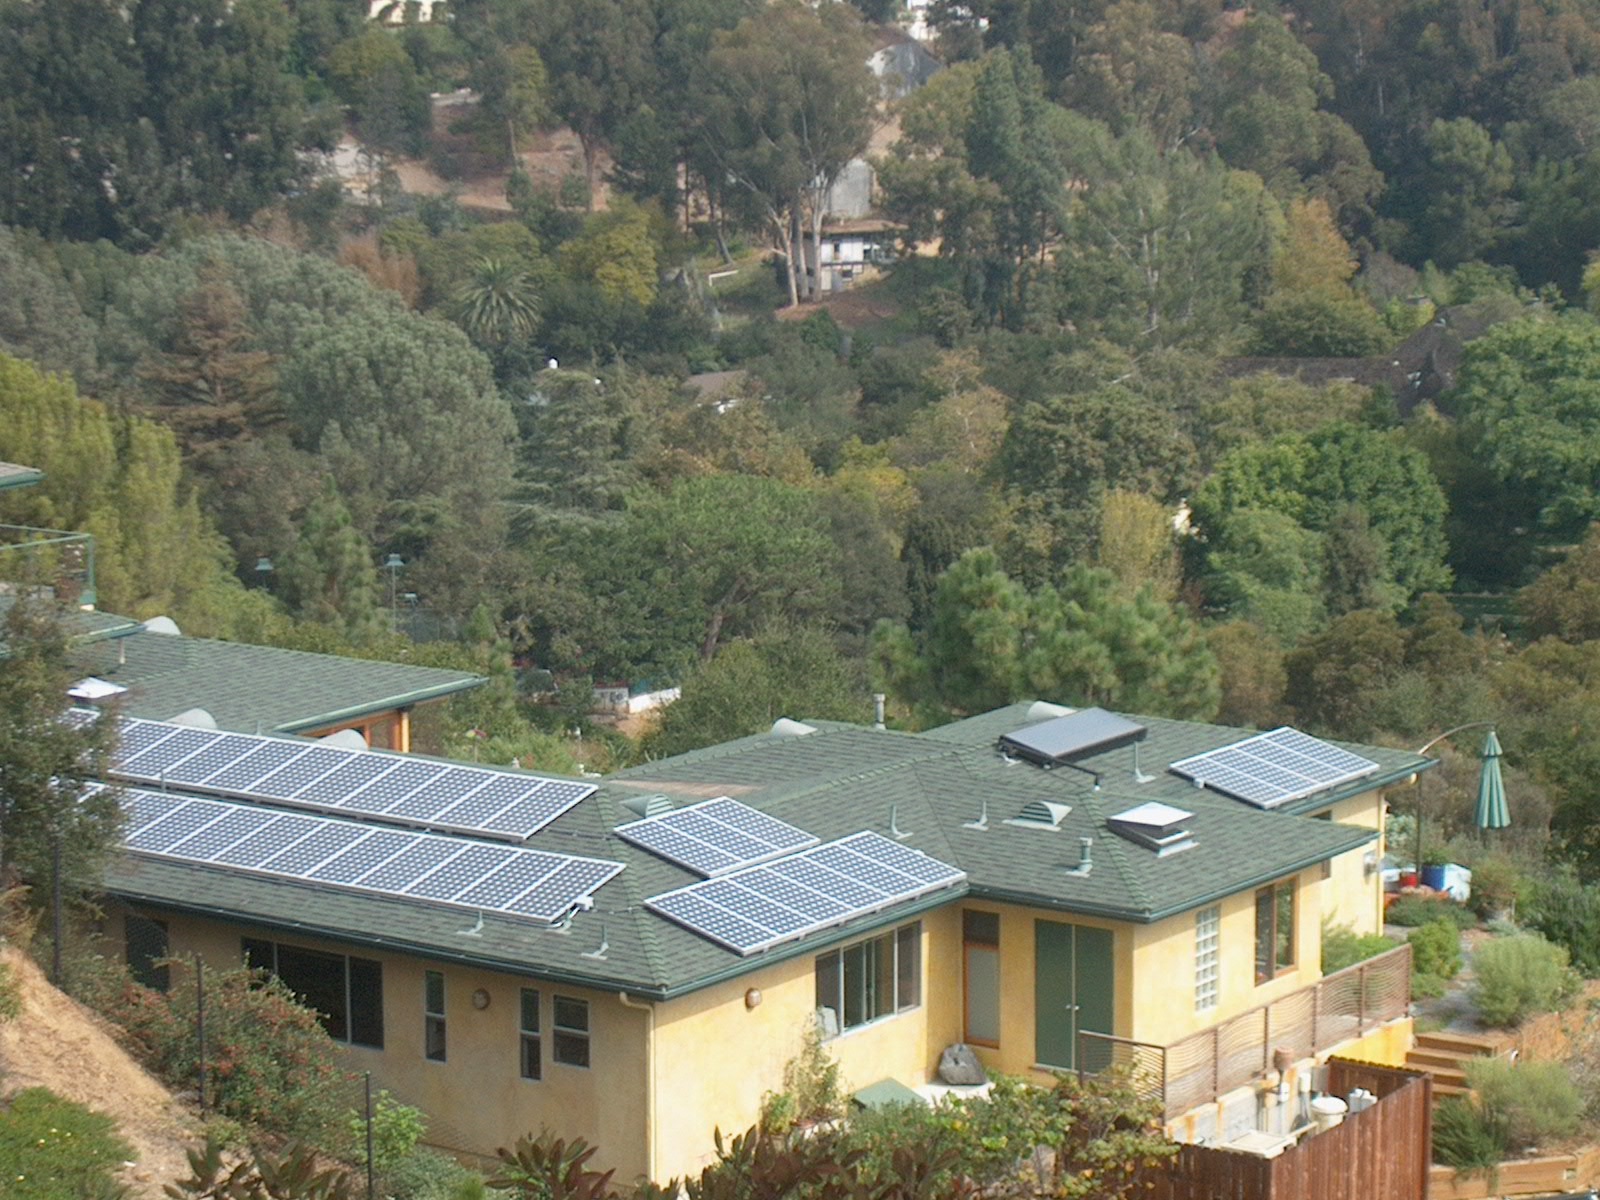 brentwood home solar panel installation